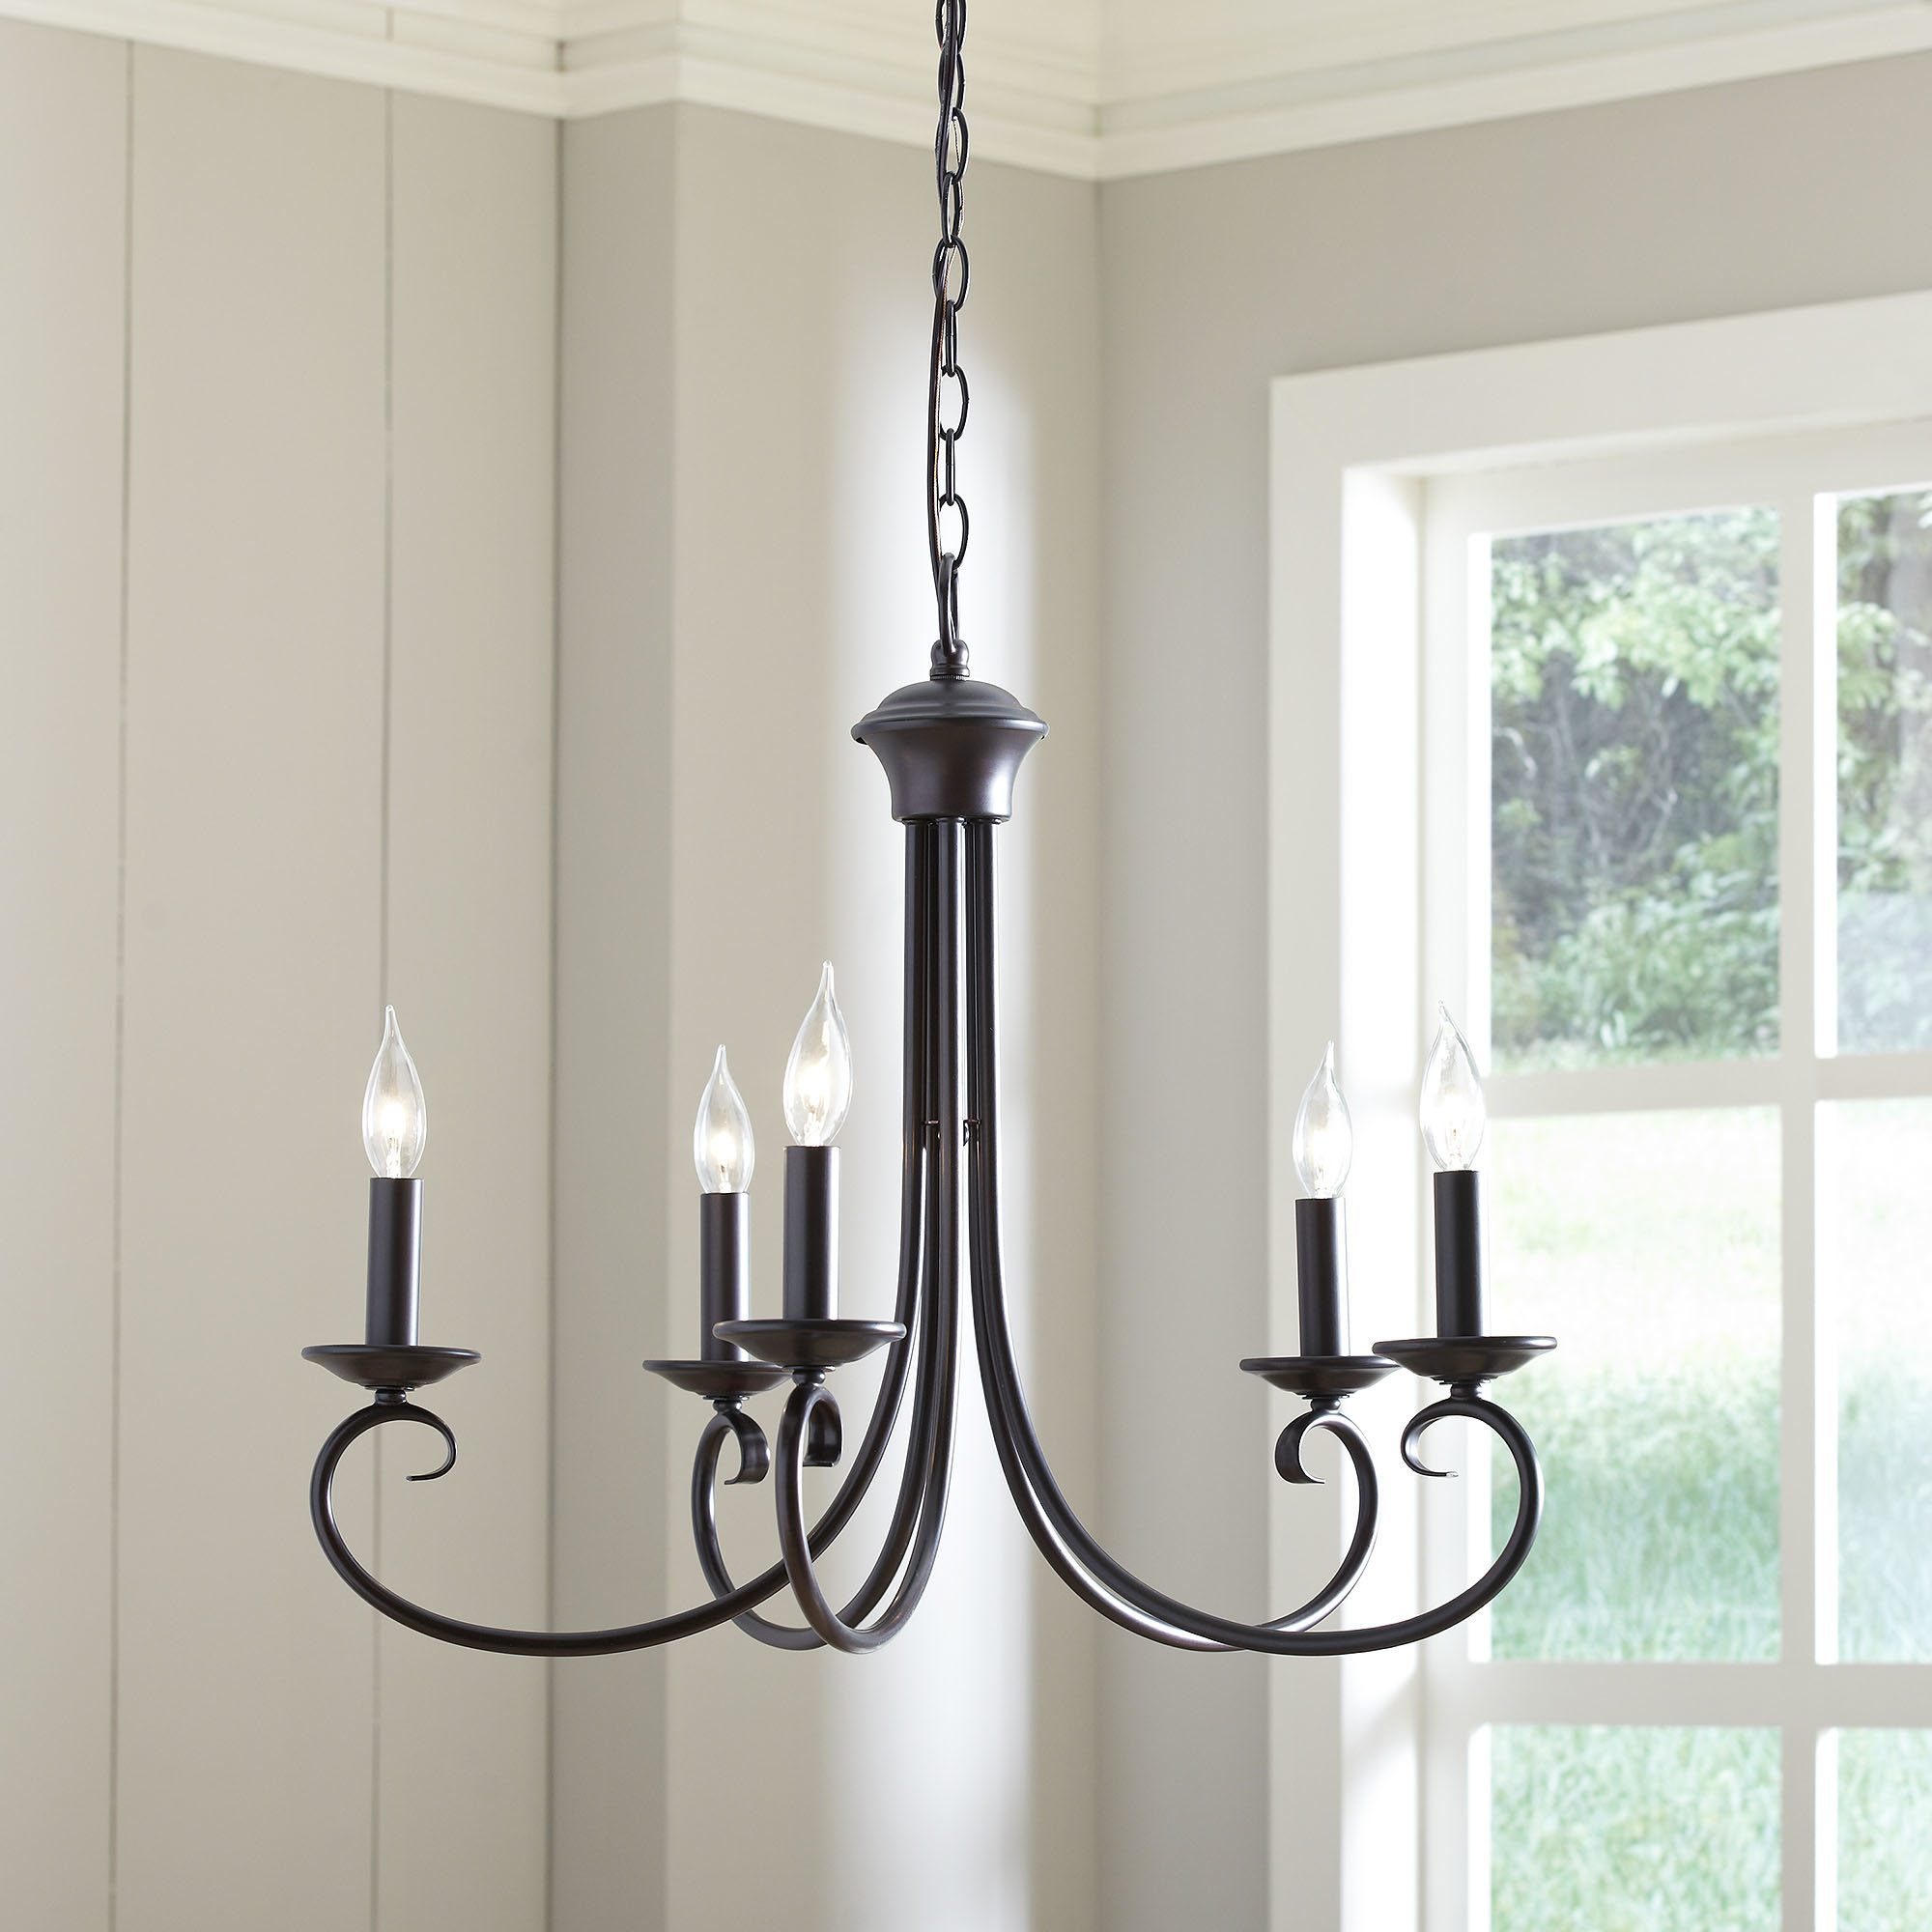 Edgell 5 Light Candle Style Chandelier With Regard To Most Current Florentina 5 Light Candle Style Chandeliers (View 11 of 25)